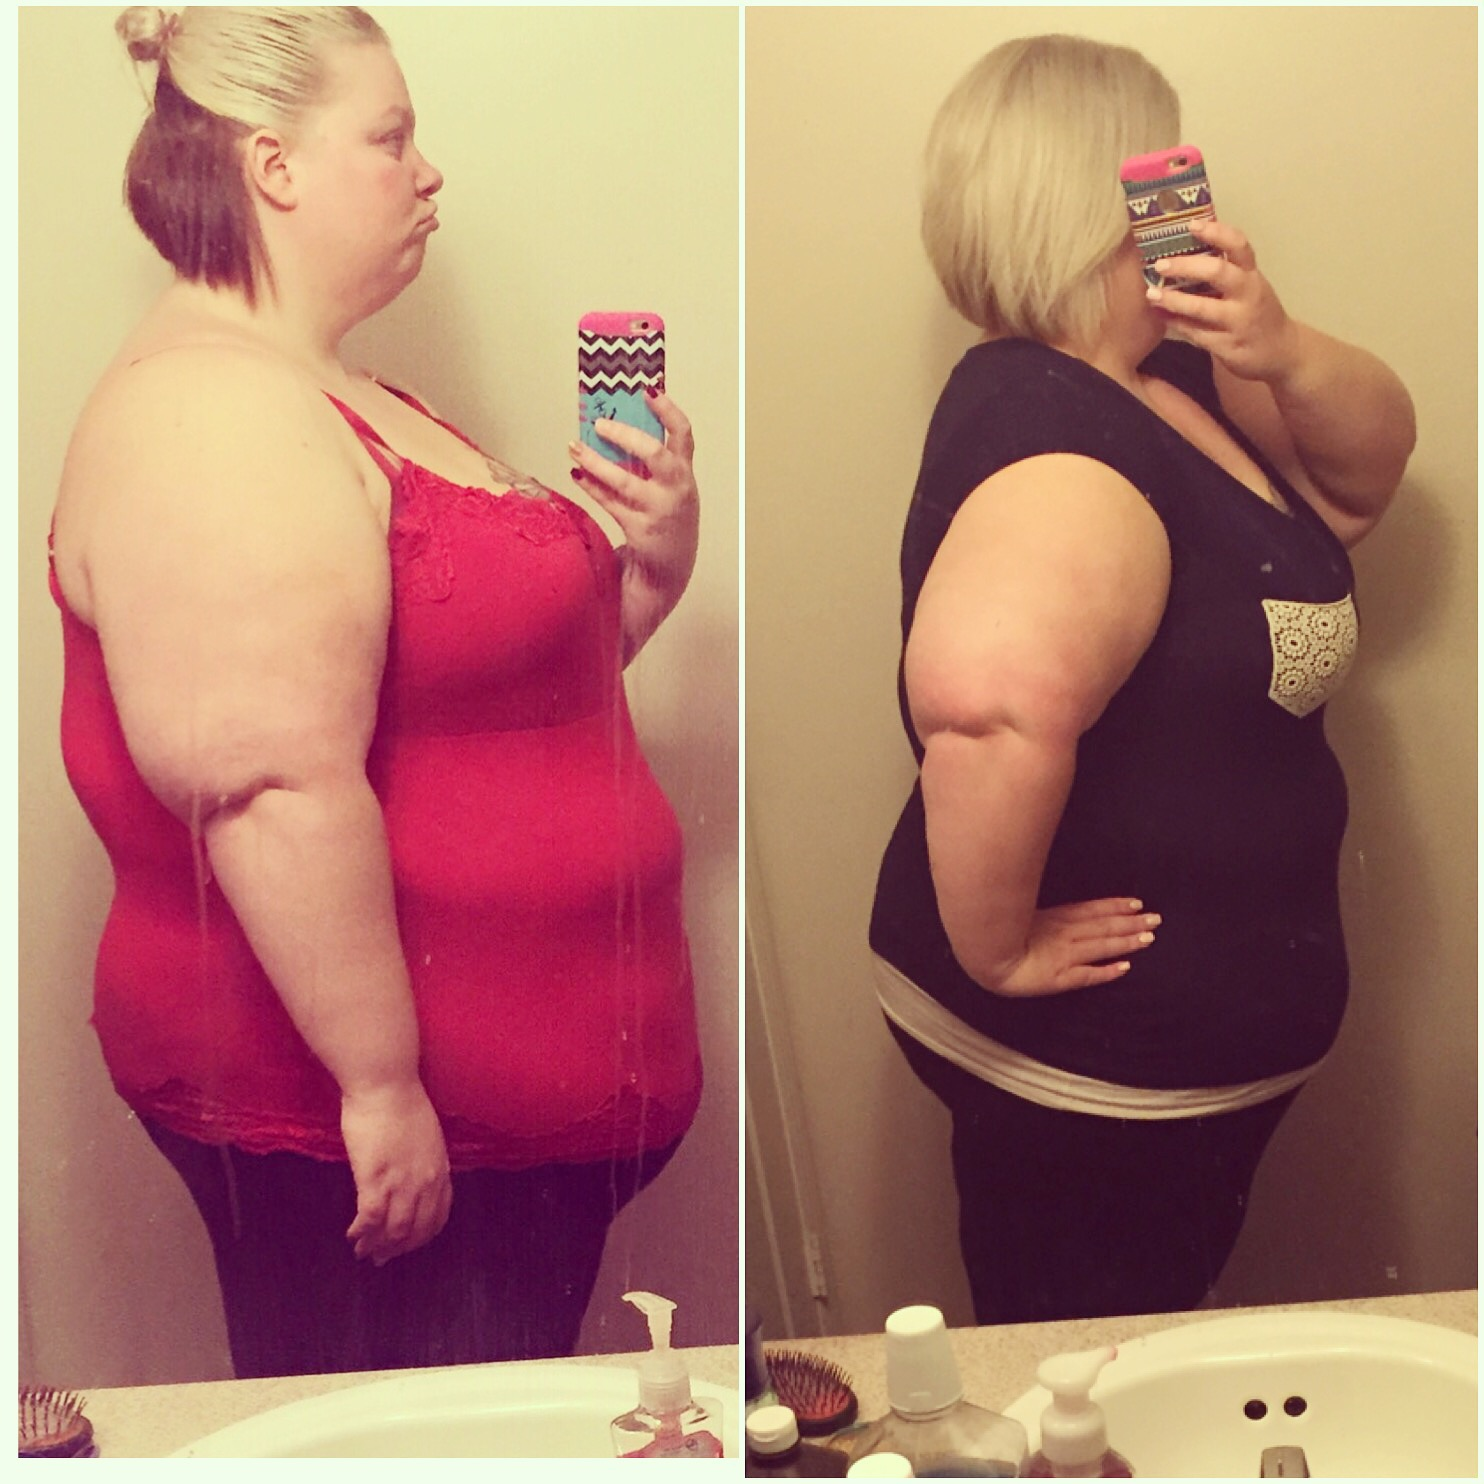 Great success story! Read before and after fitness transformation stories from women and men who hit weight loss goals and got THAT BODY with training and meal prep. Find inspiration, motivation, and workout tips | 39 Pounds Lost: If I can do this so can YOU!